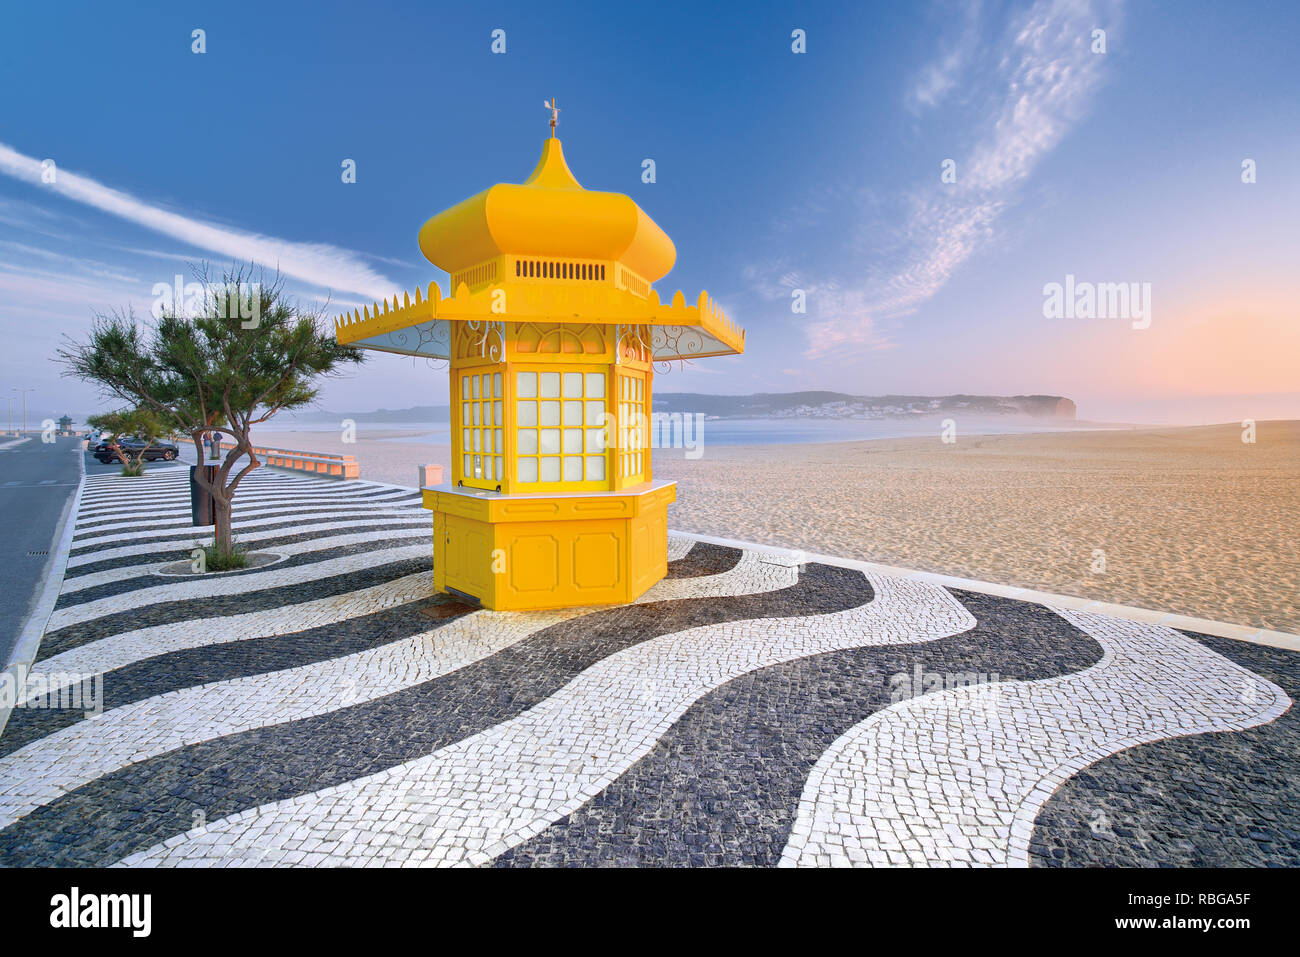 Yellow kiosk on cobble stone  sidewalk with black and white ornament at wide lonely sand beach - Stock Image